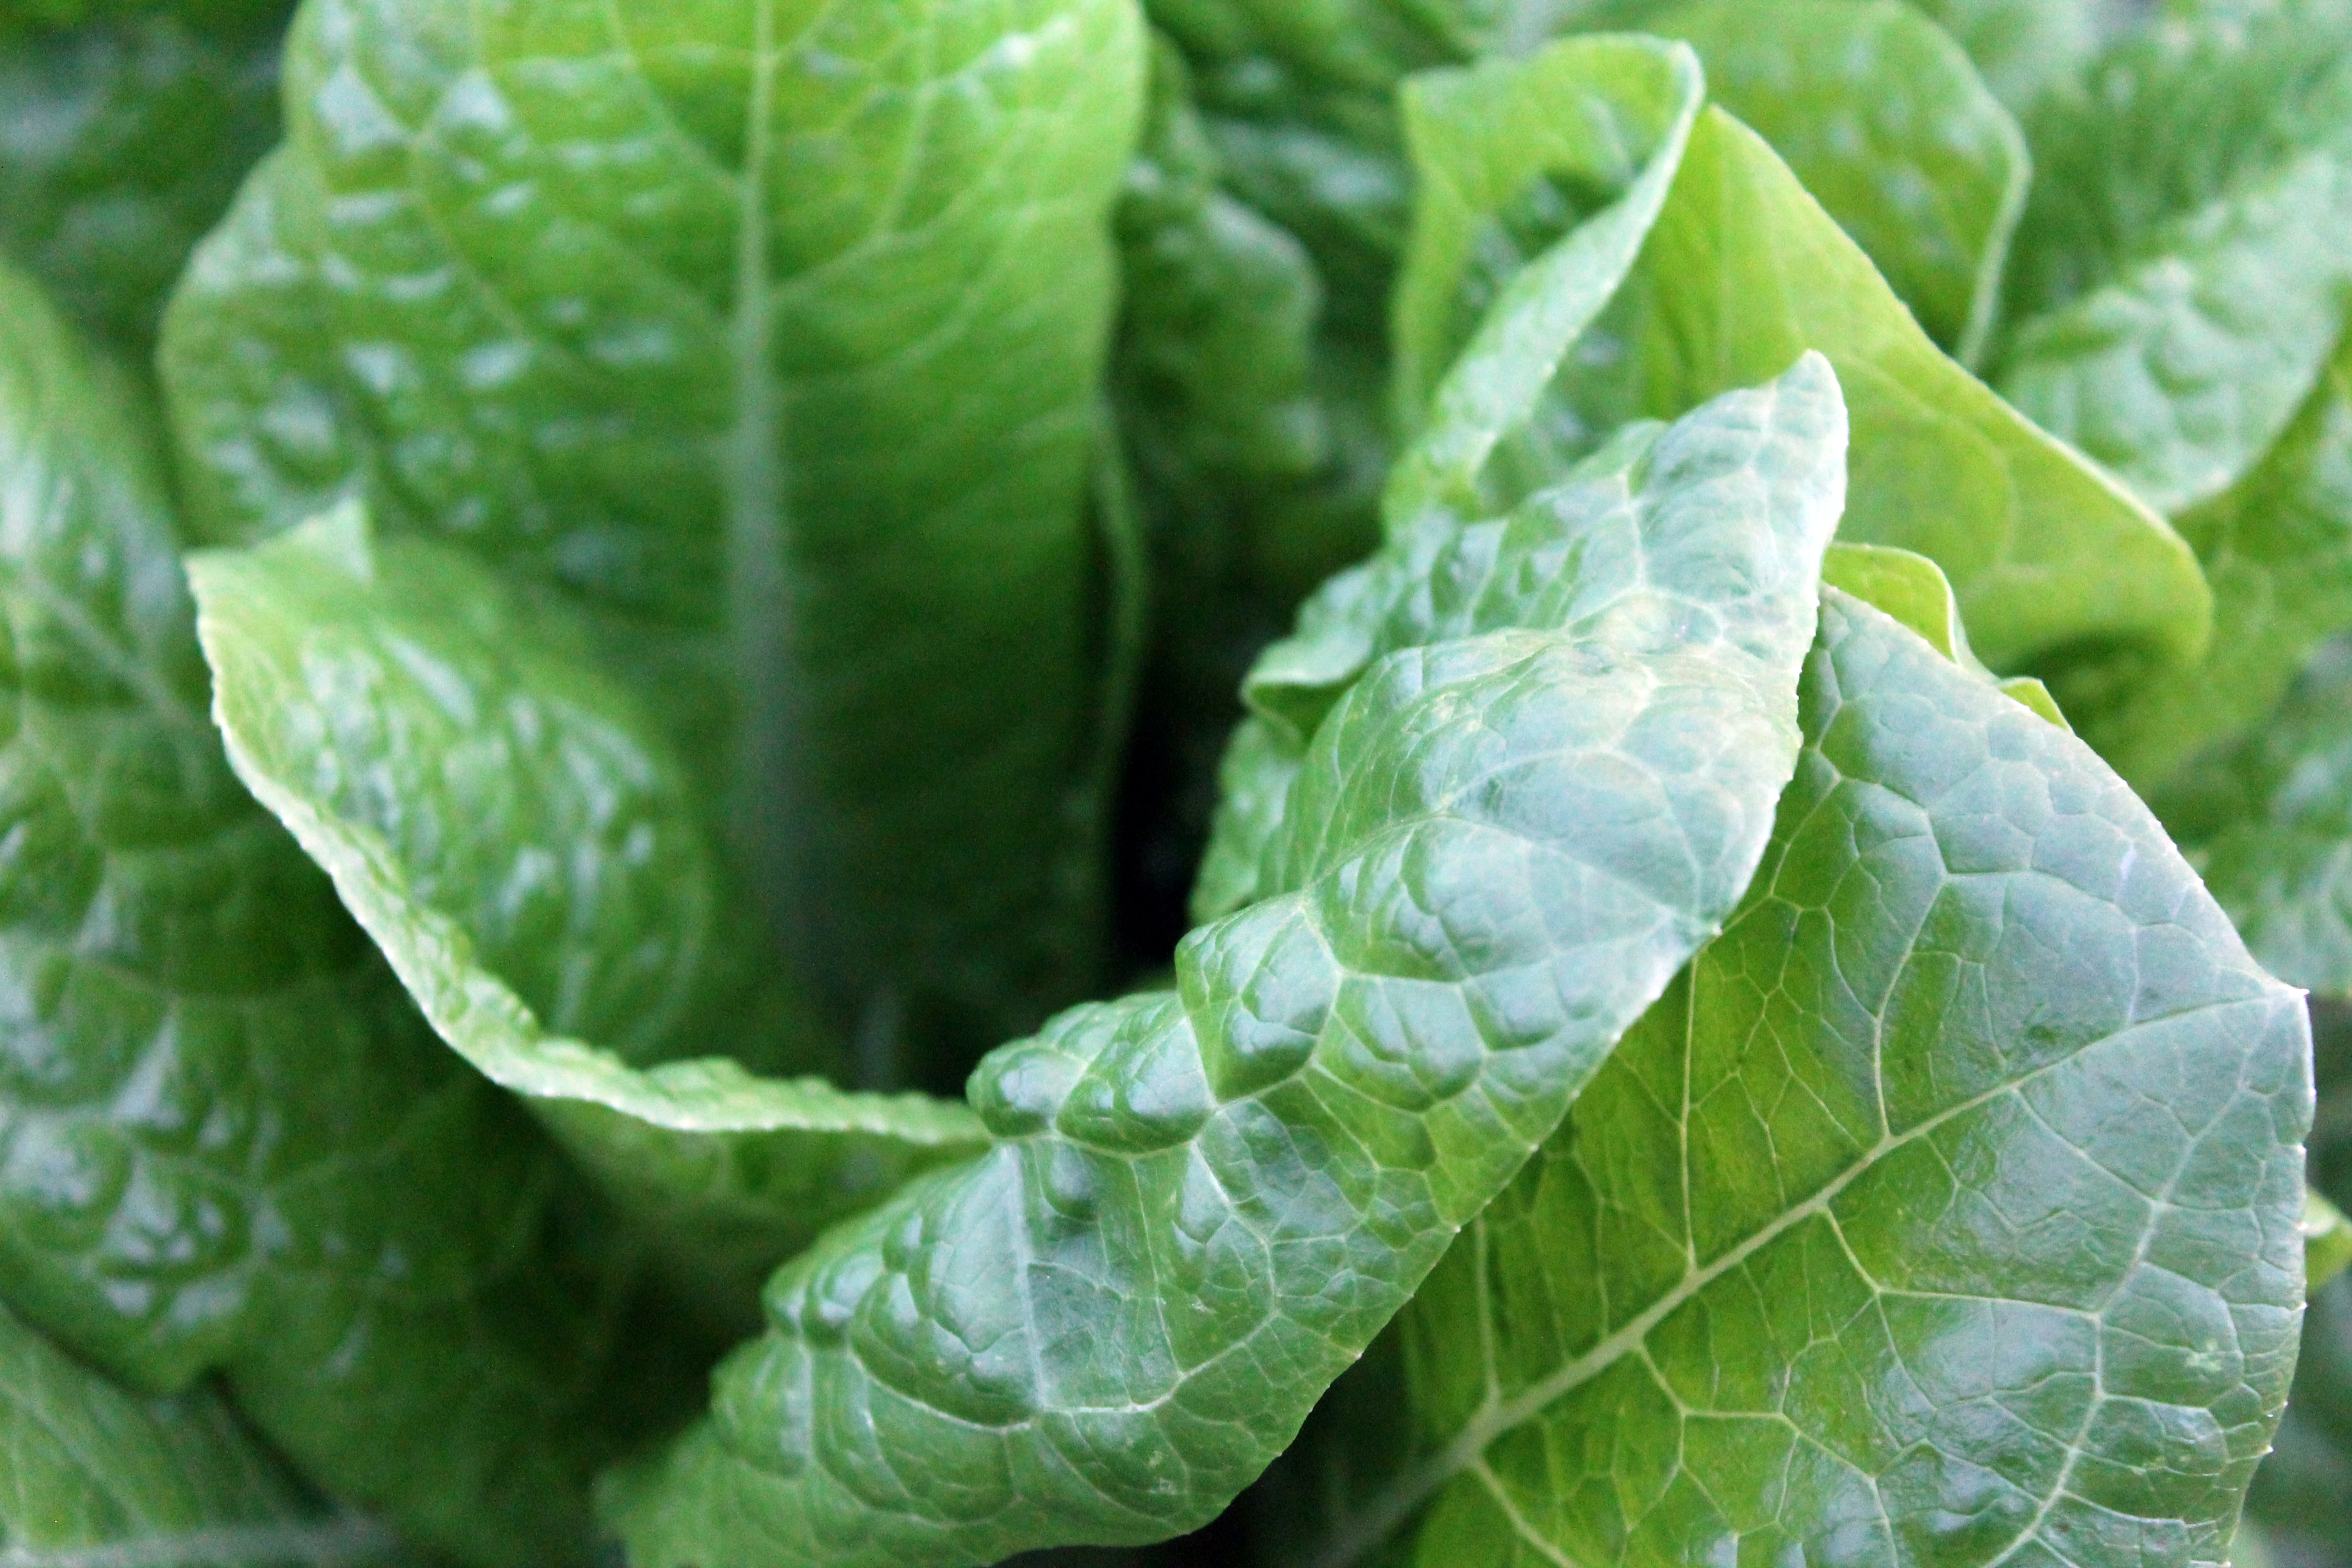 closeup photo of green lettuce